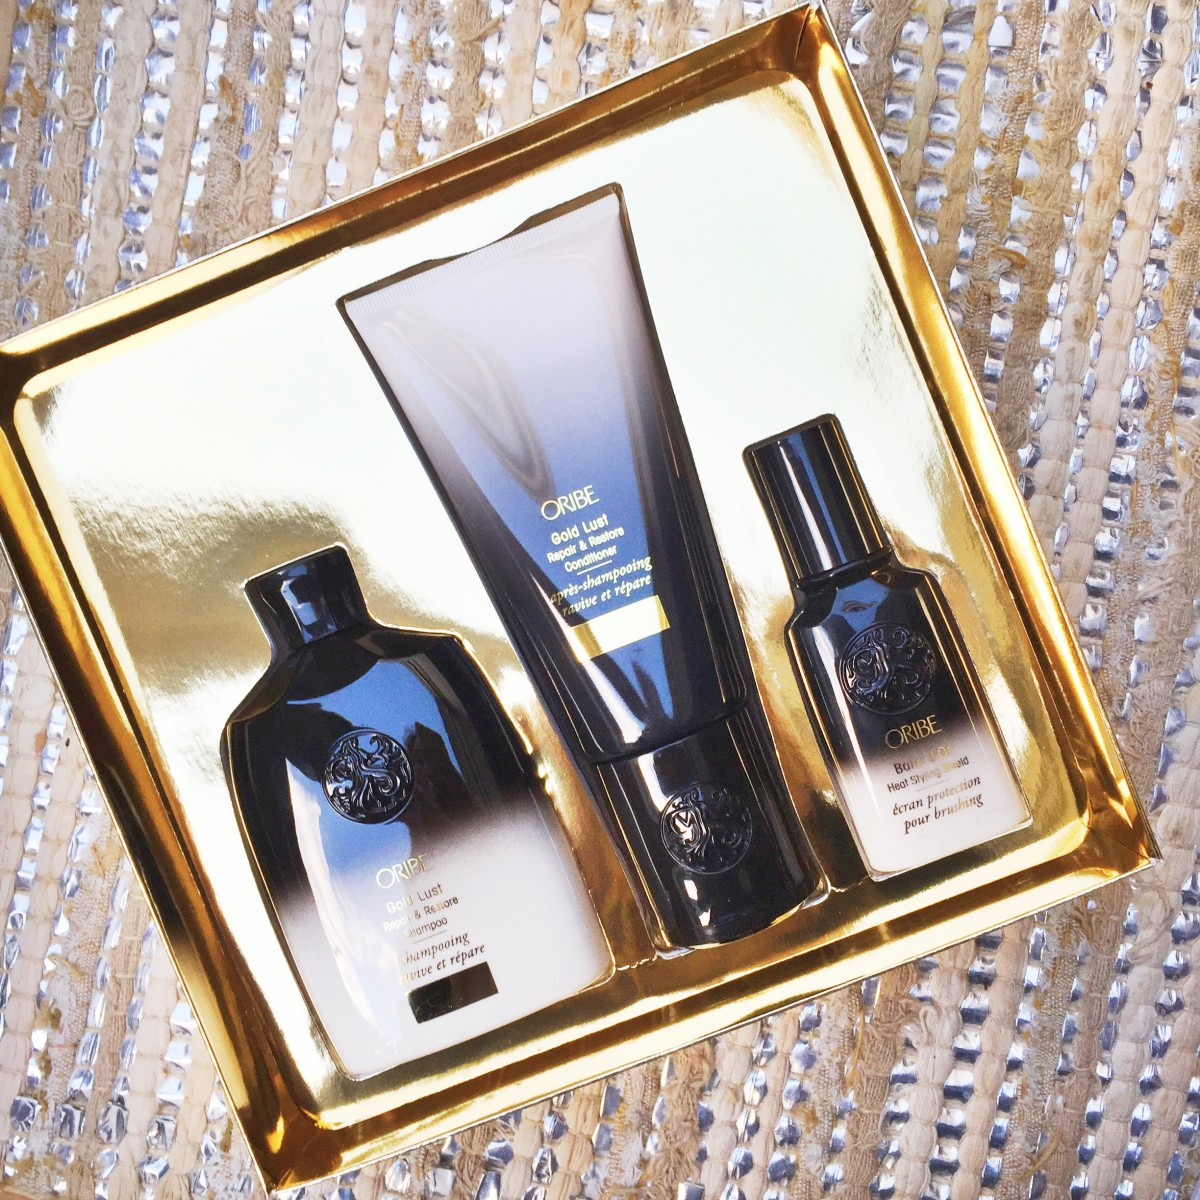 Giveaway: Oribe Gold Lust Set